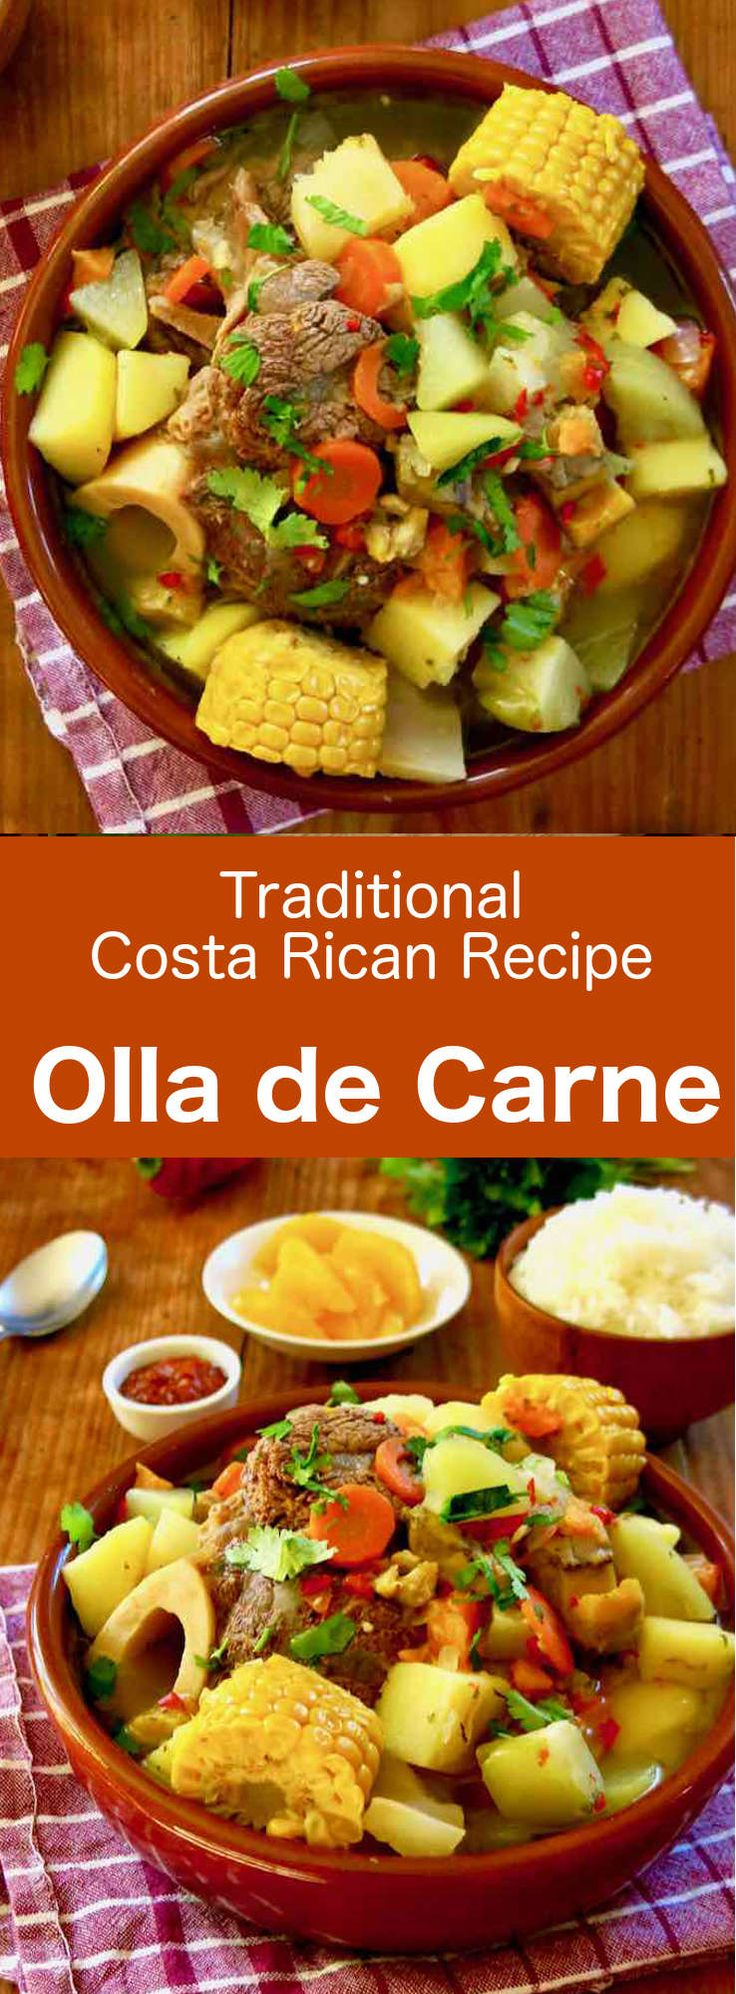 Olla de carne (meat pot) is one of the jewels of Costa Rican cuisine. It is prep… Olla de carne (meat pot) is one of the jewels of Costa Rican cuisine. It is prepared with beef, potatoes and other vegetables that are slow-cooked. Costa Rican Desserts, Costa Rican Food, Marmite, Vegetable Recipes, Meat Recipes, Carne En Trocitos, Beef And Potatoes, Tomato Pie, Gallo Pinto